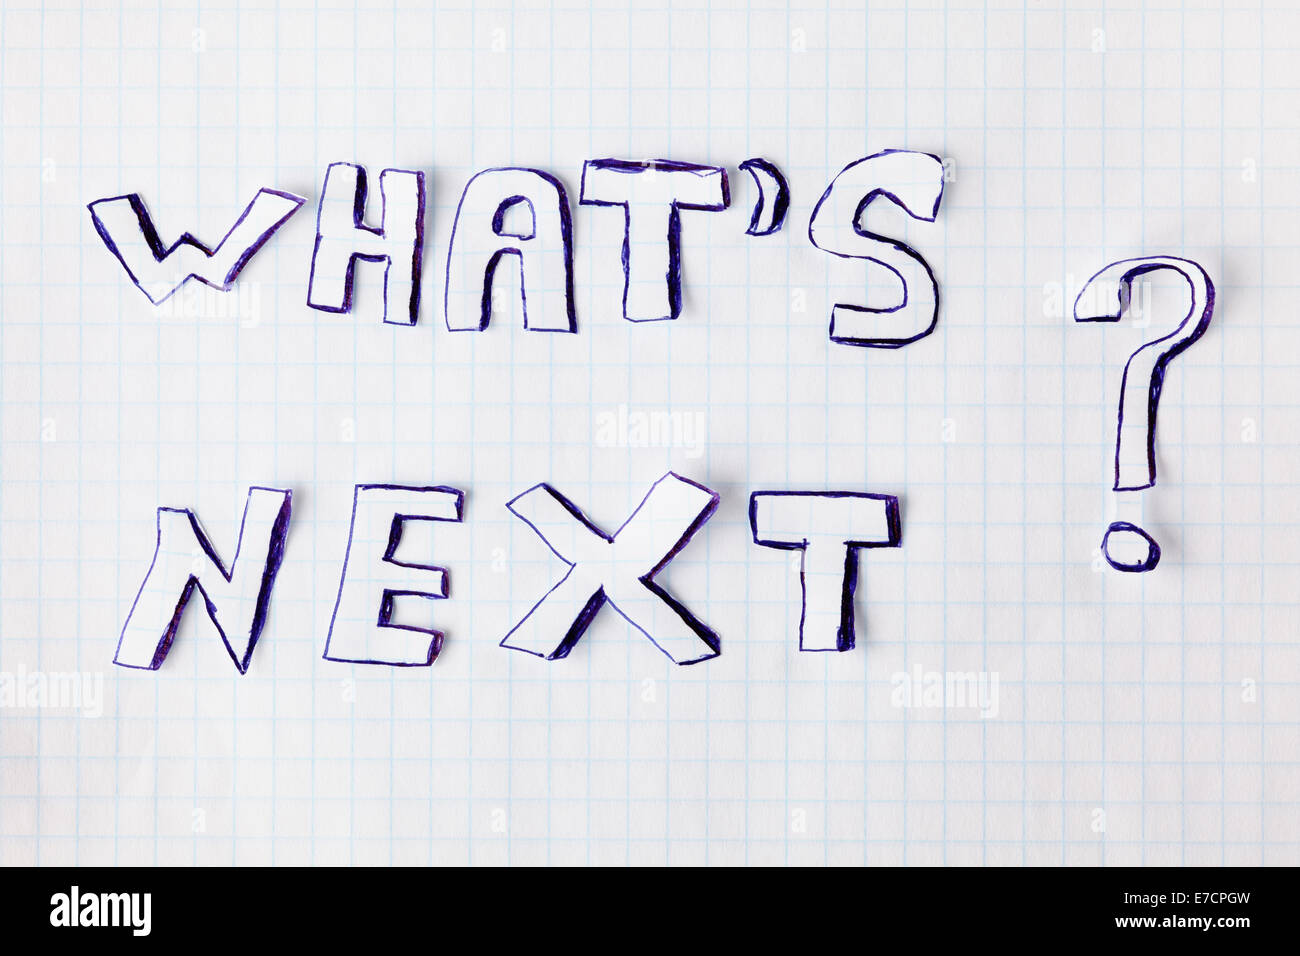 Question 'What's next?' on a notebook sheet. - Stock Image